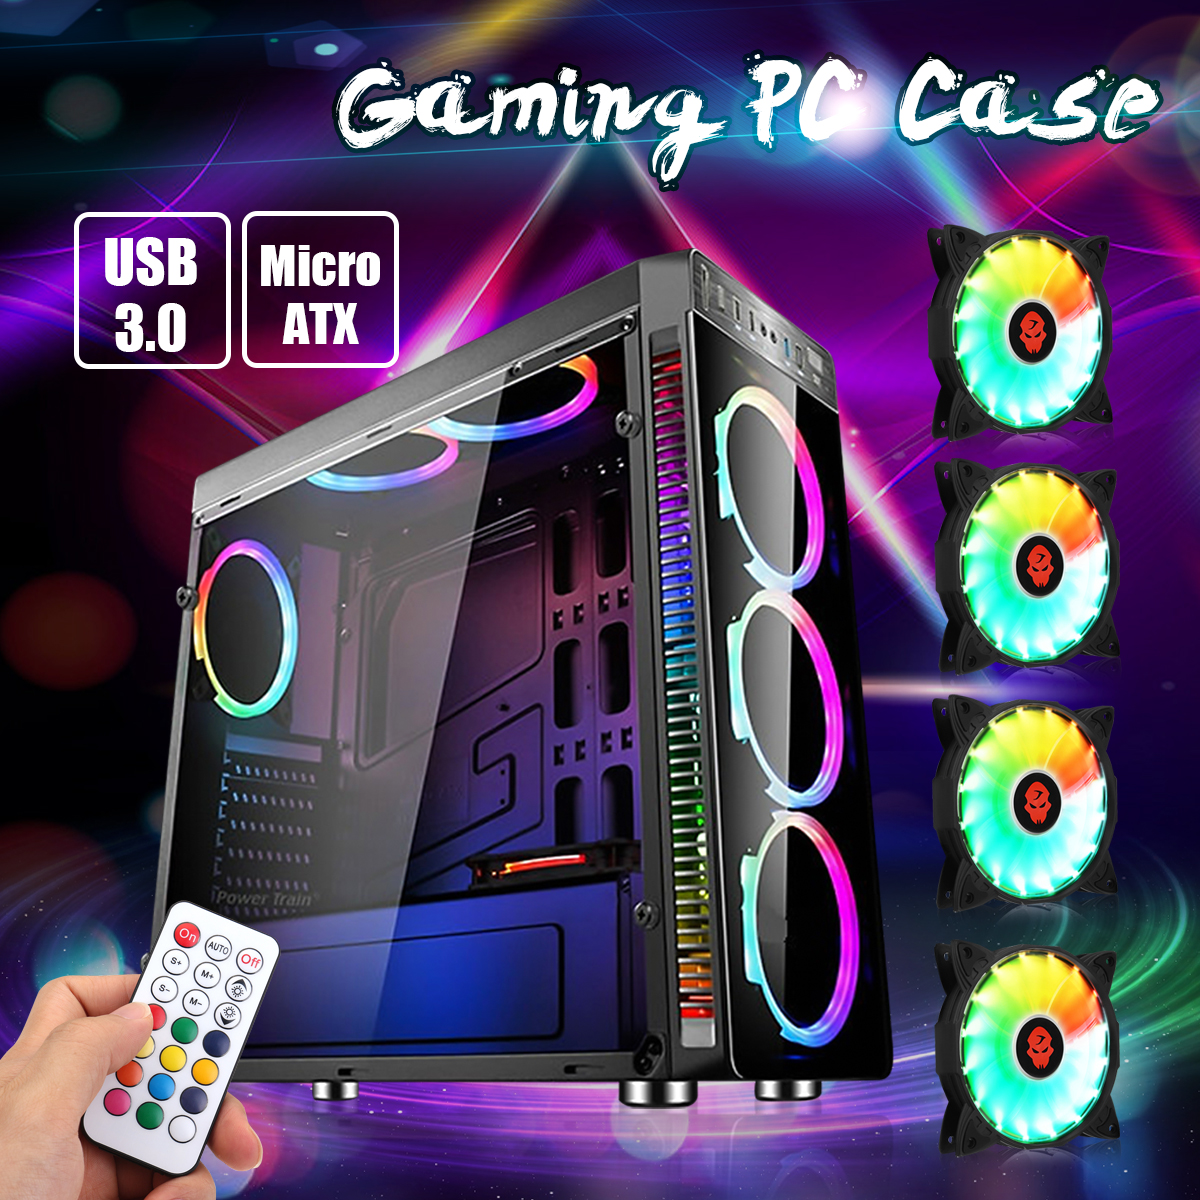 ATX Full Tower Chassis Gaming Computer PC Case USB 3.0 Ports with 4Pcs RGB Cooling Fans & Remote Control, Support Micro ATX, ATX Motherboard